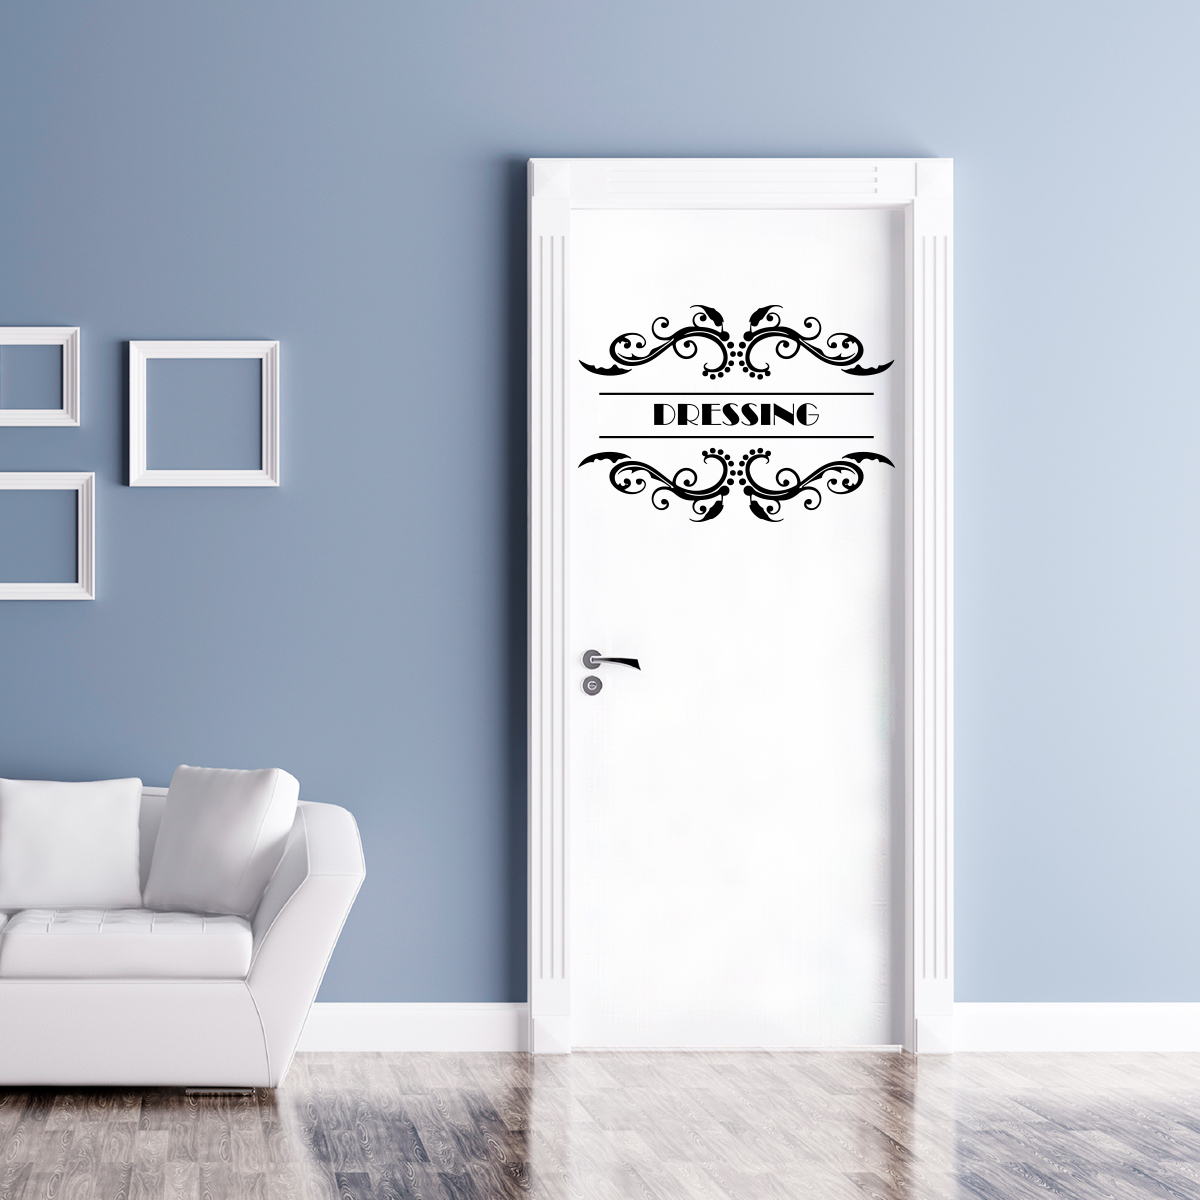 Sticker porte dressing orn stickers citations chambre for Stickers de porte